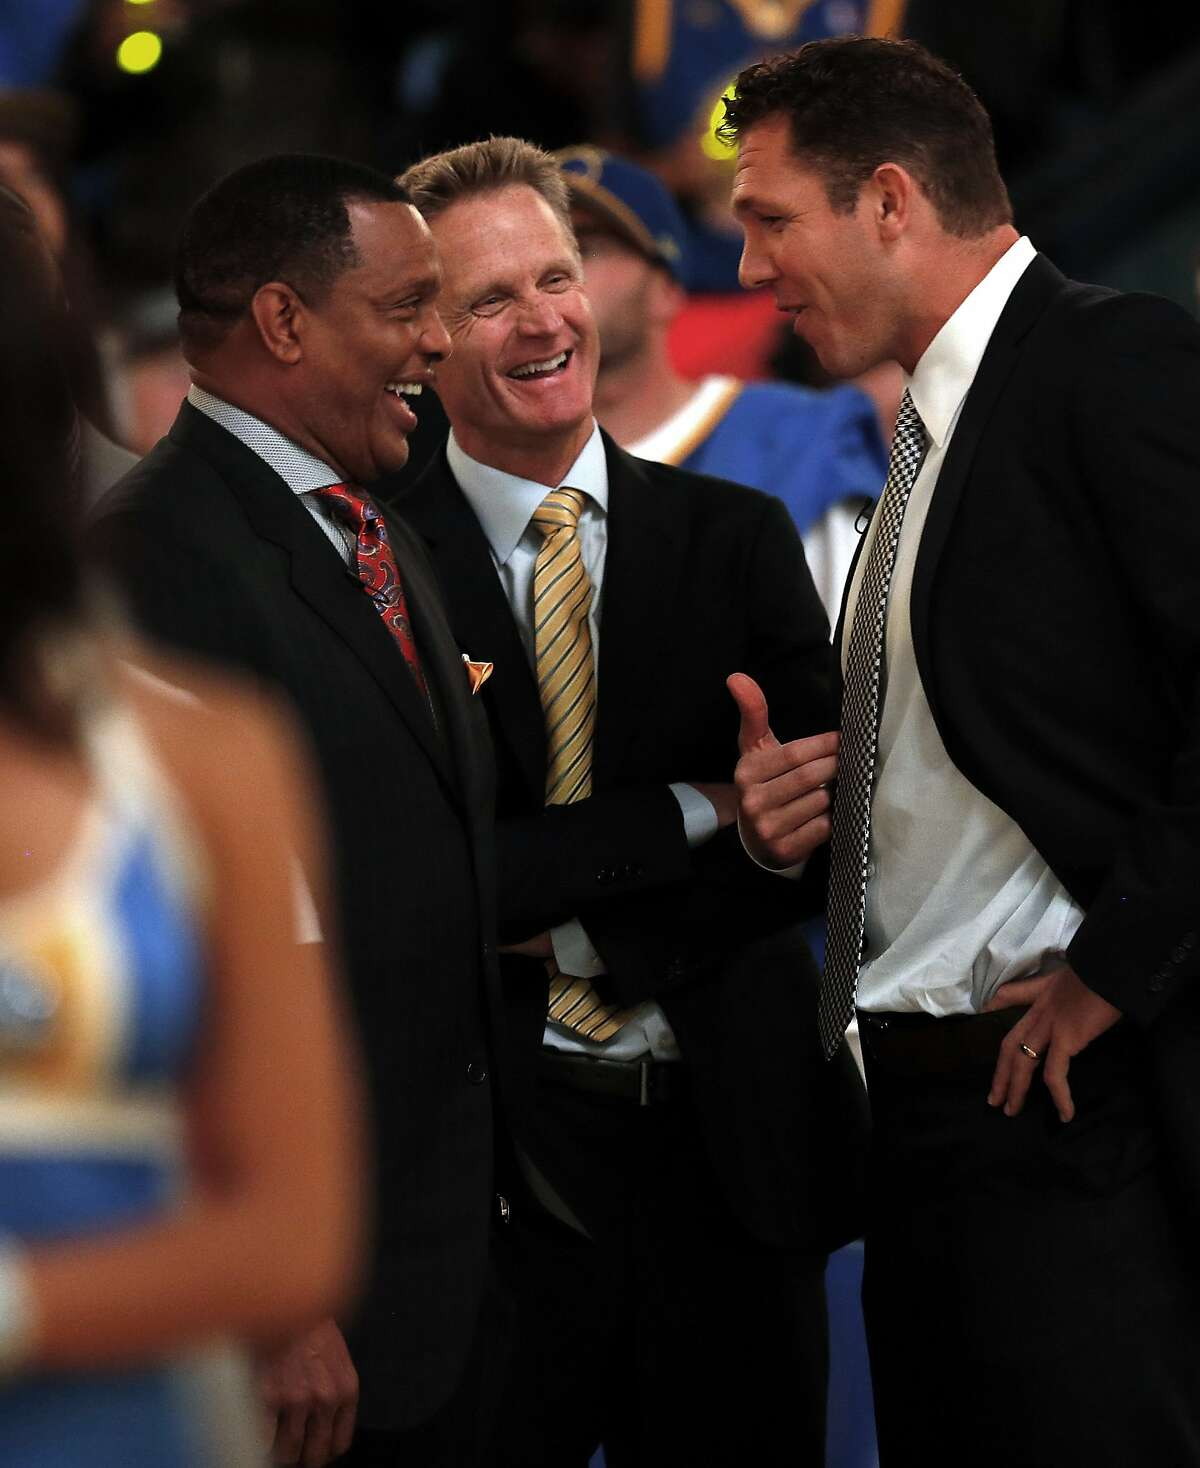 Golden State Warriors' head coach Steve Kerr, interim coach Luke Walton and New Orleans Pelicans' head coach Alvin Gentry before NBA game at Oracle Arena in Oakland, Calif., on Tuesday, October 27, 2015.